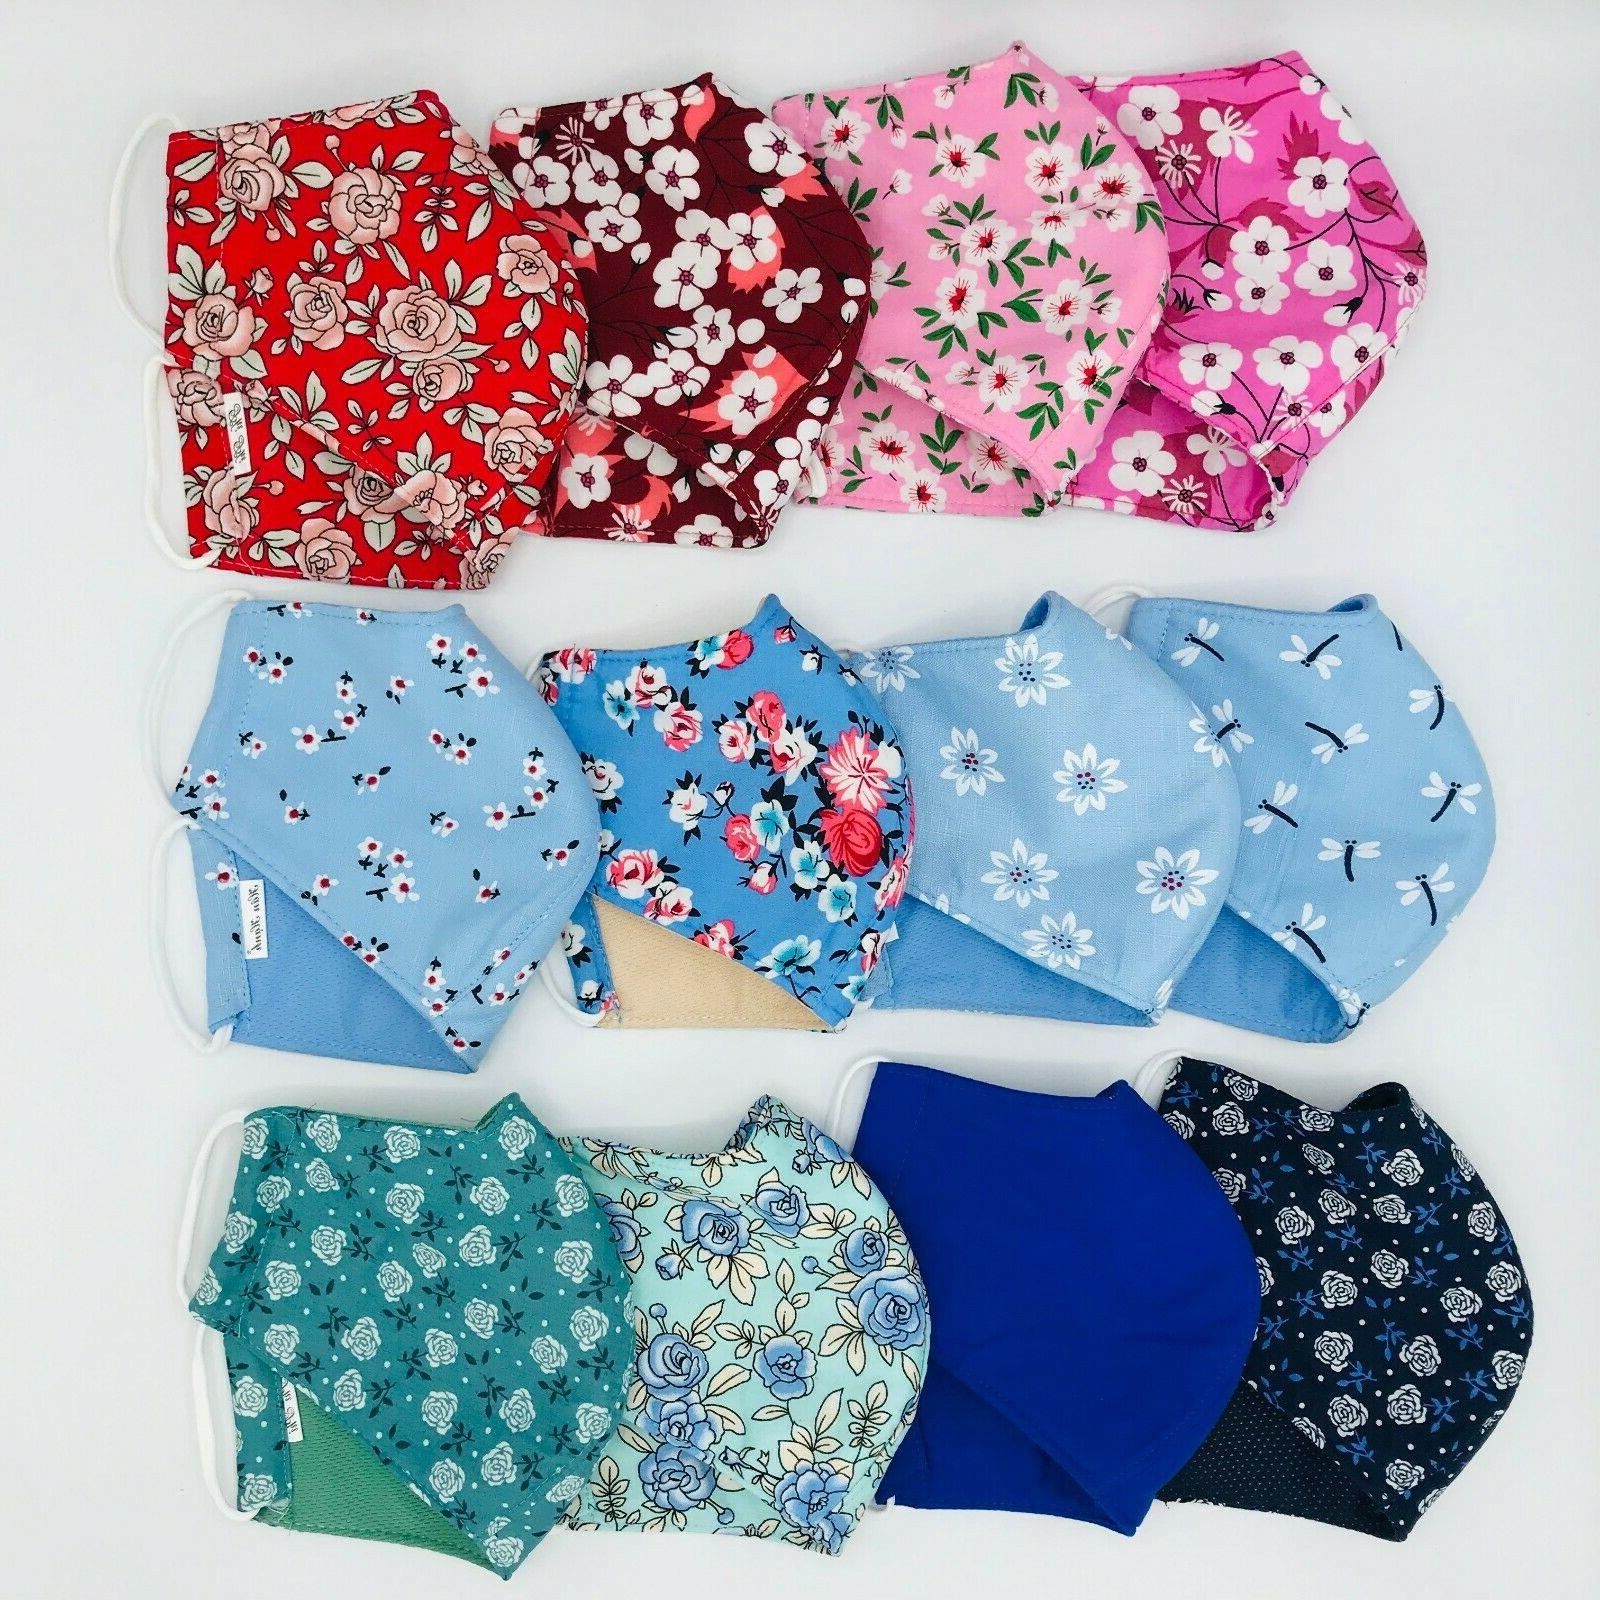 2 PACK/3 PACK fabric, Washable Women M